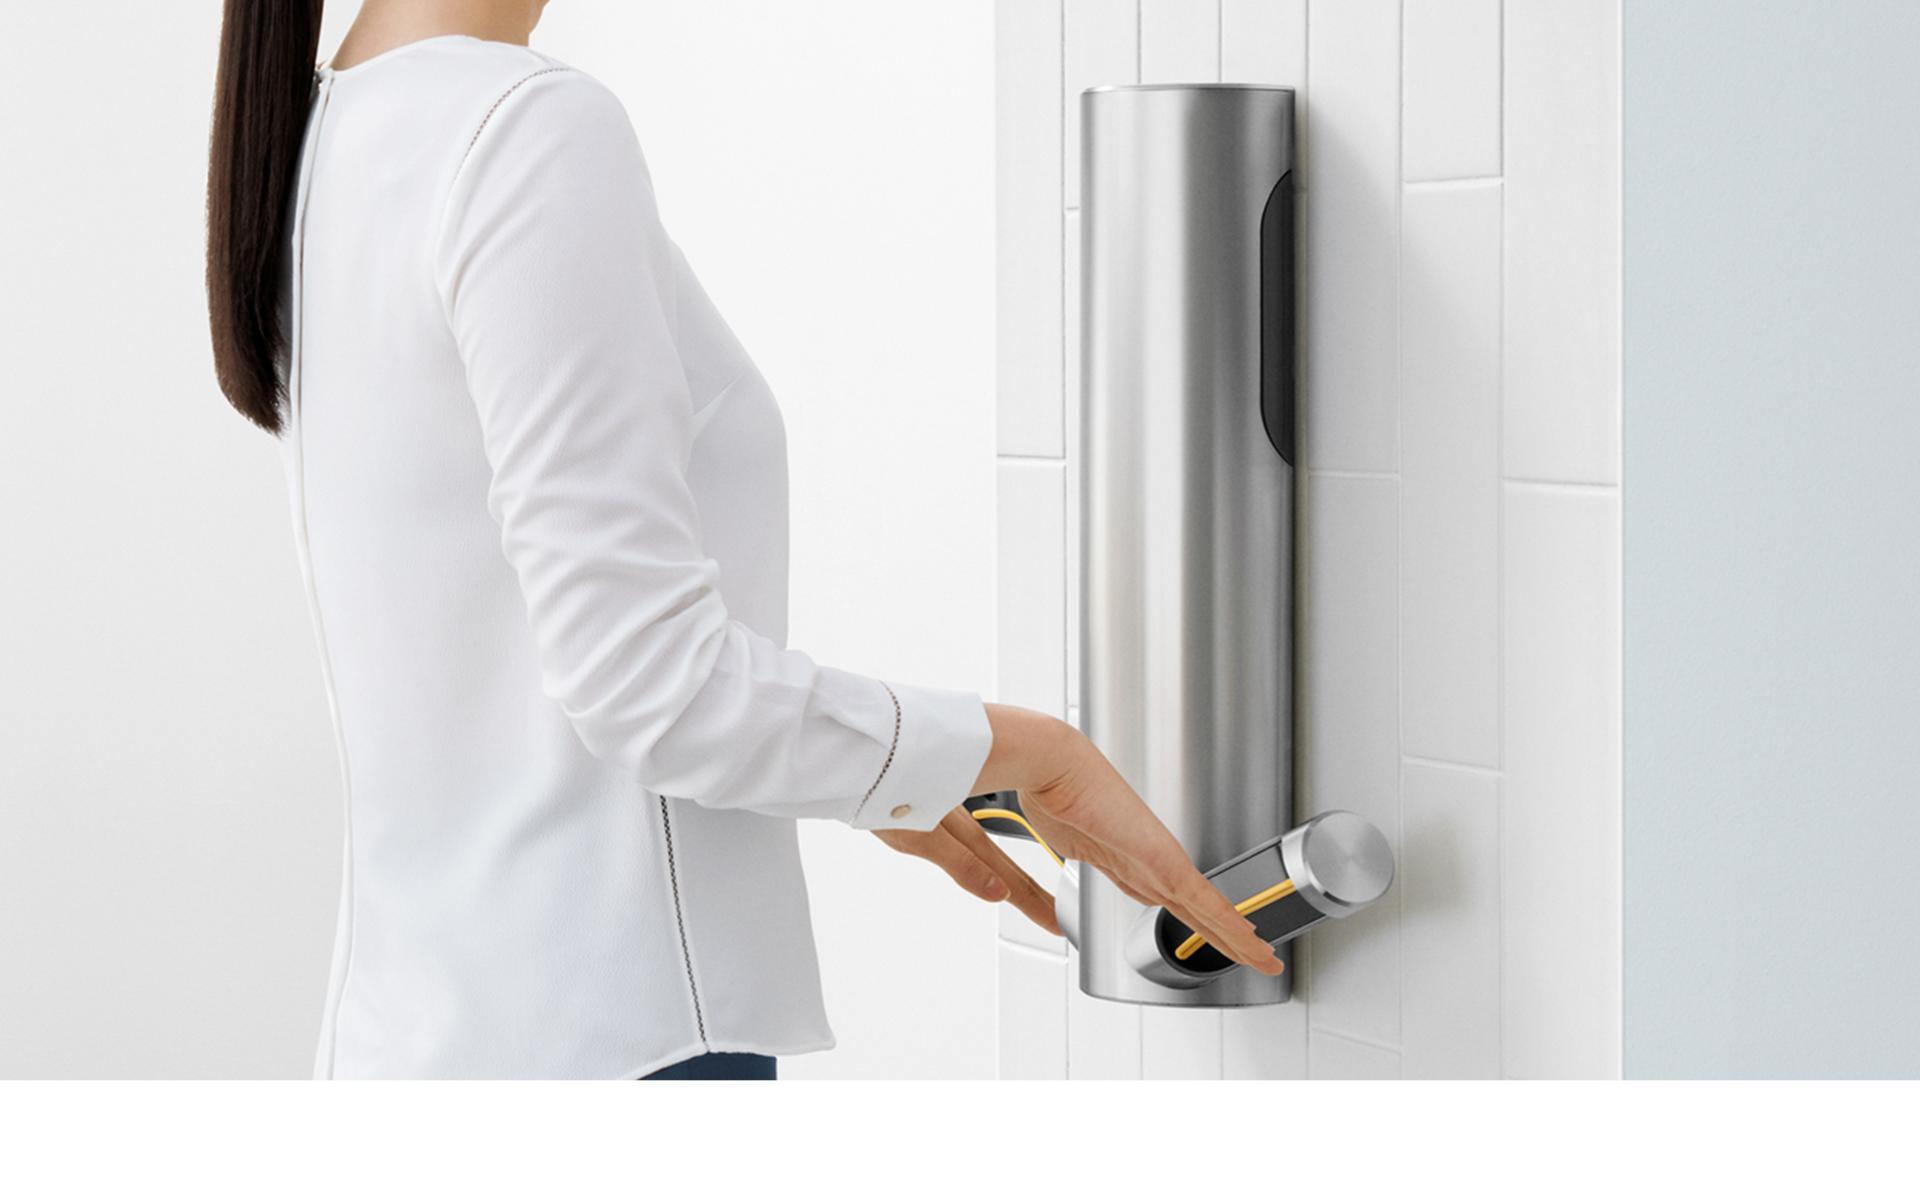 Woman using the Dyson Airblade 9kJ